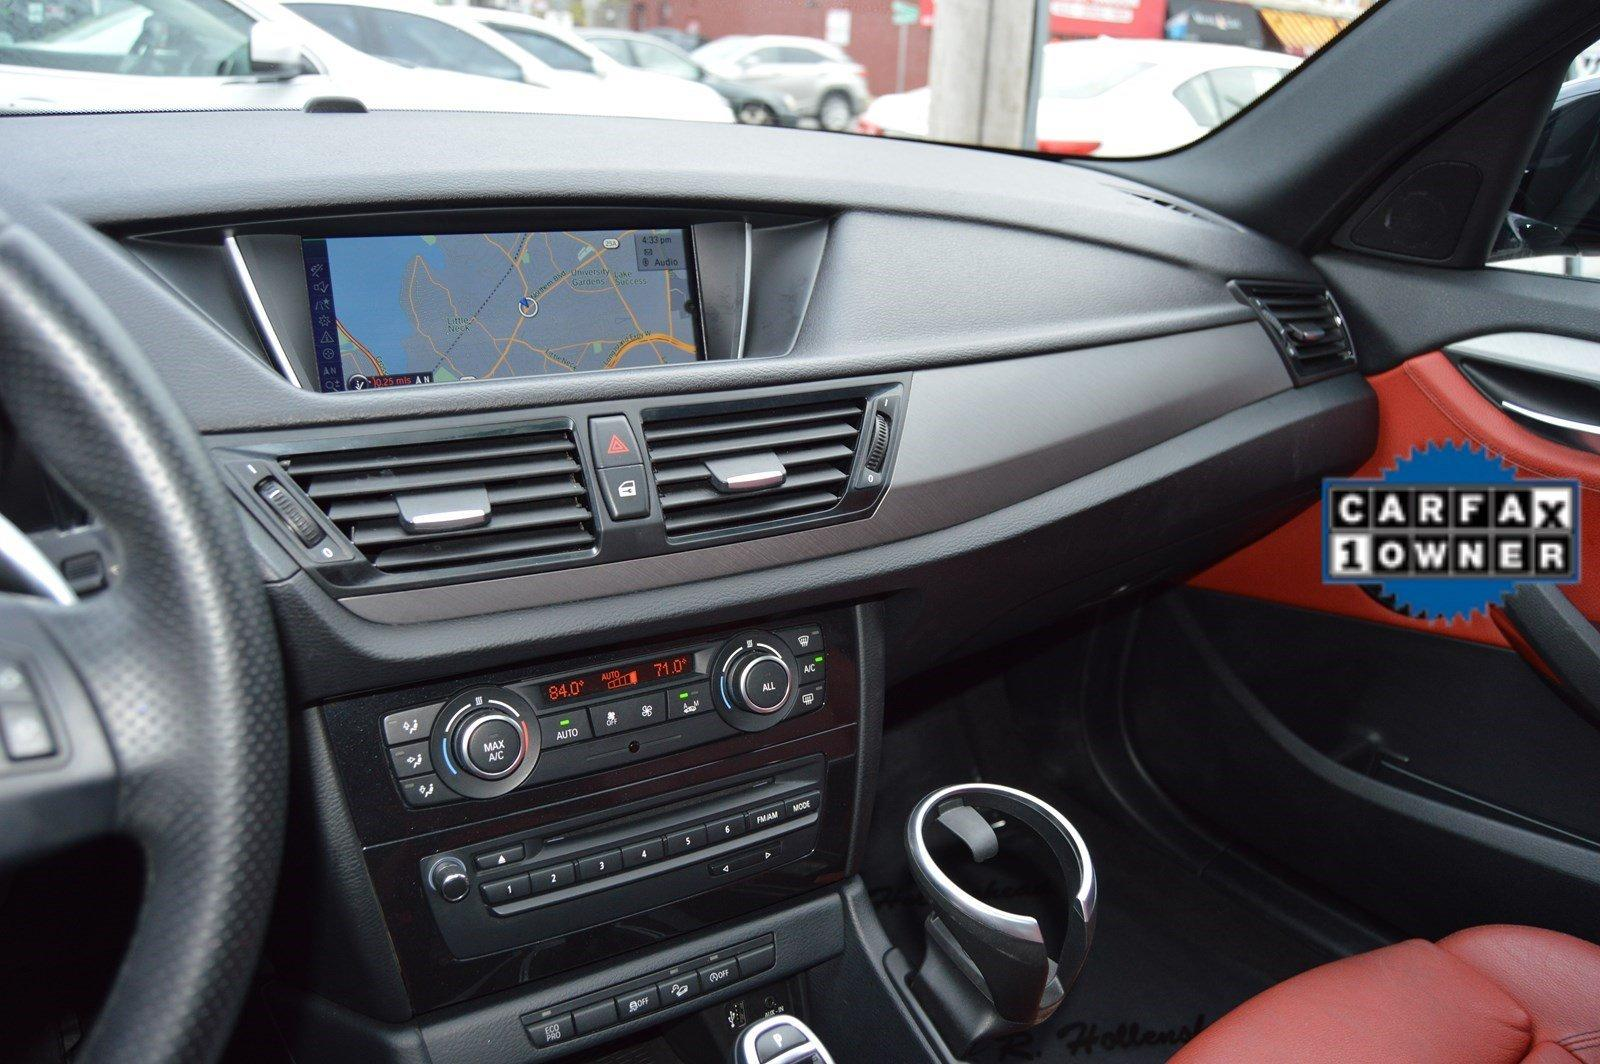 Interieur X1 2014 2014 Bmw X1 Xdrive28i Red Interior Stock 2787 For Sale